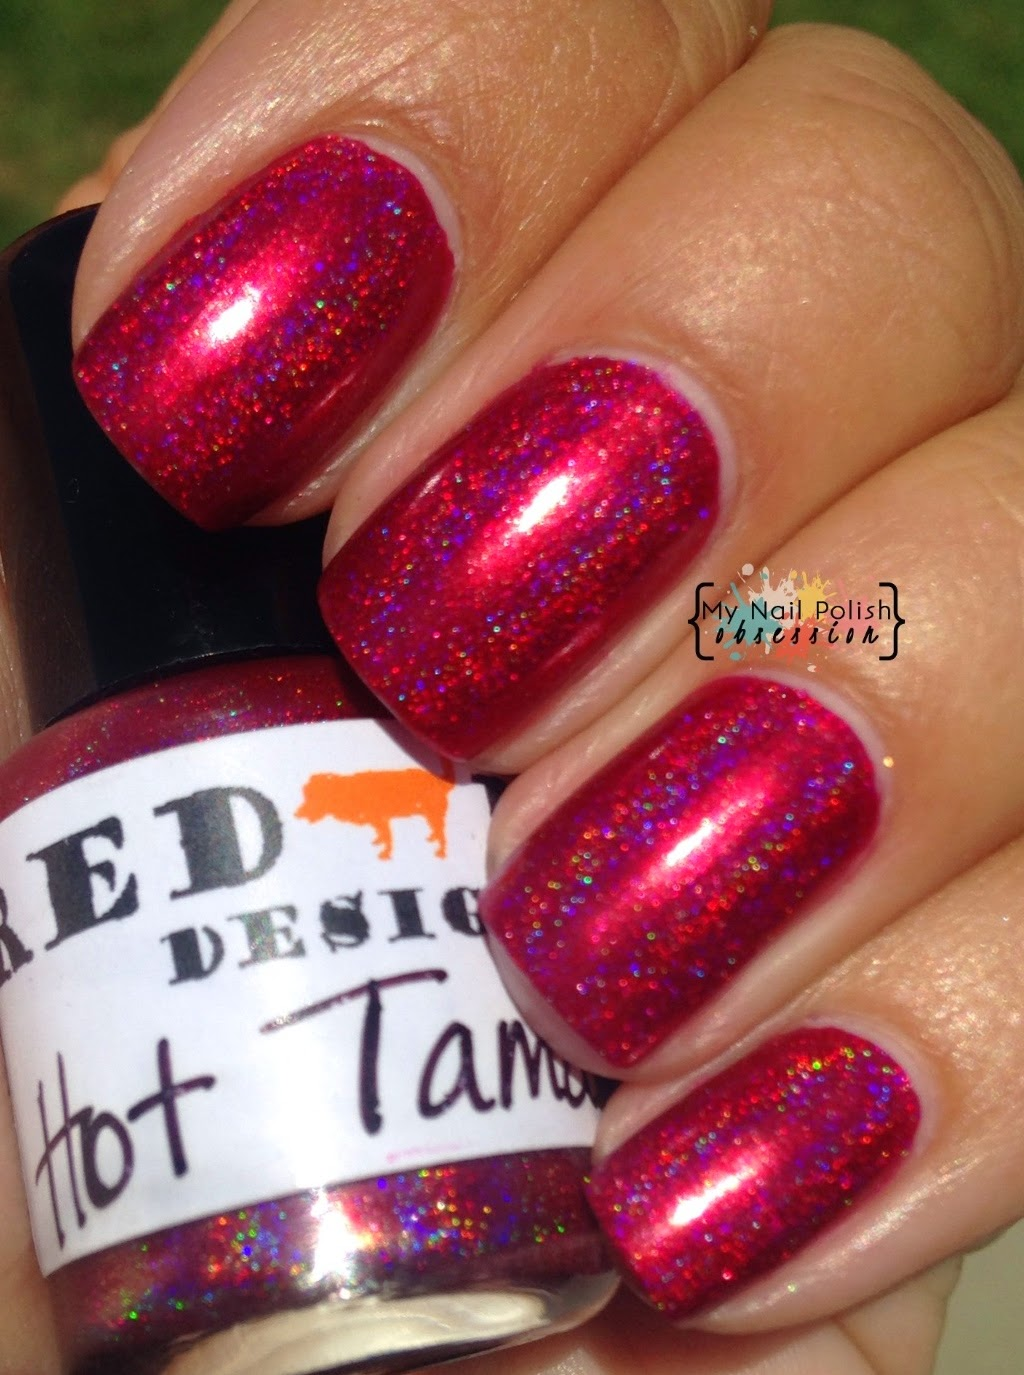 My Nail Polish Obsession: Red Dog Designs Hot Tamale